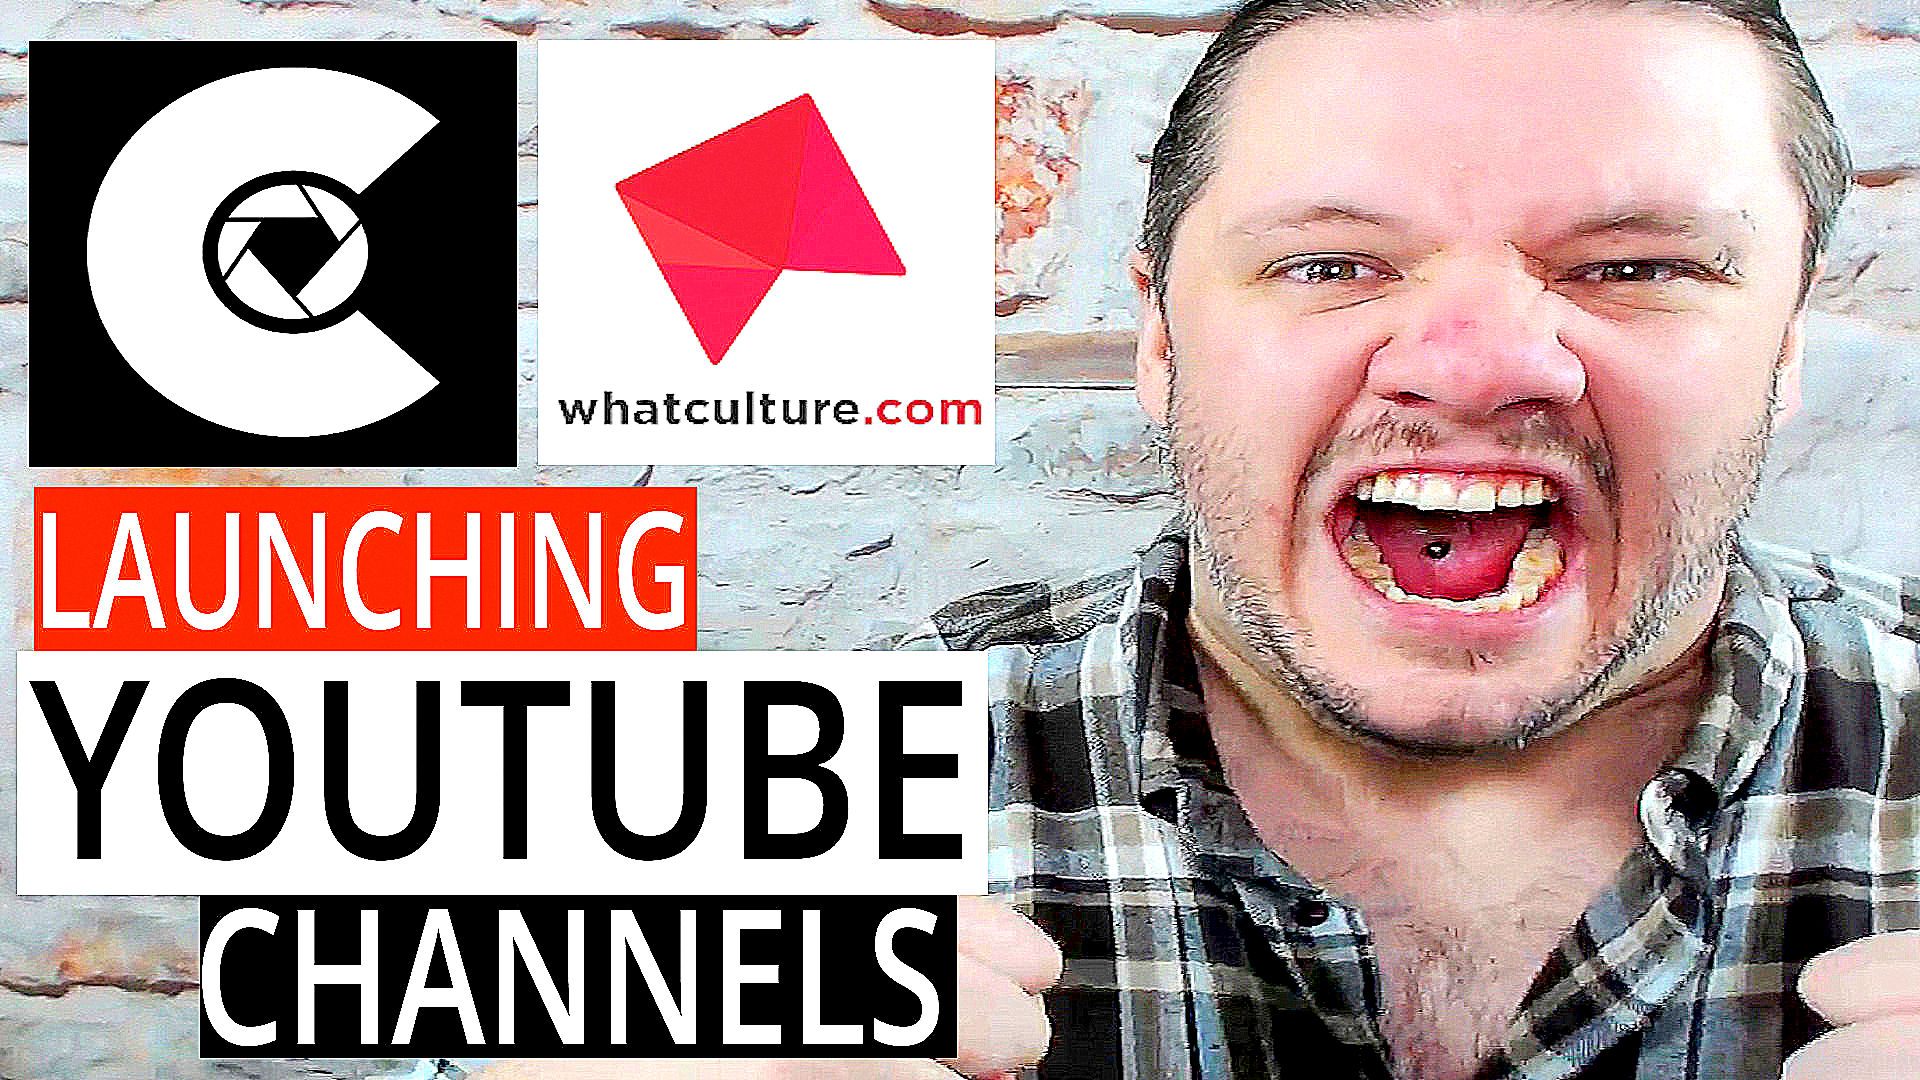 alan spicer,alanspicer,youtube tips,youtube tricks,asyt,whatculture,cultaholic,adam blampied,adam pacitti,king ross,jack the jobber,adam blampied new channel,adam pacitti new channel,new channel,how to launch a youtube channel,how to launch a channel,launching a youtube channel,starting a new youtube channel,starting a youtube channel,rebranding youtube channels,rebranding,youtube,youtube channel,whatculture wwe,whatculture fires staff,spicer,cultaholics